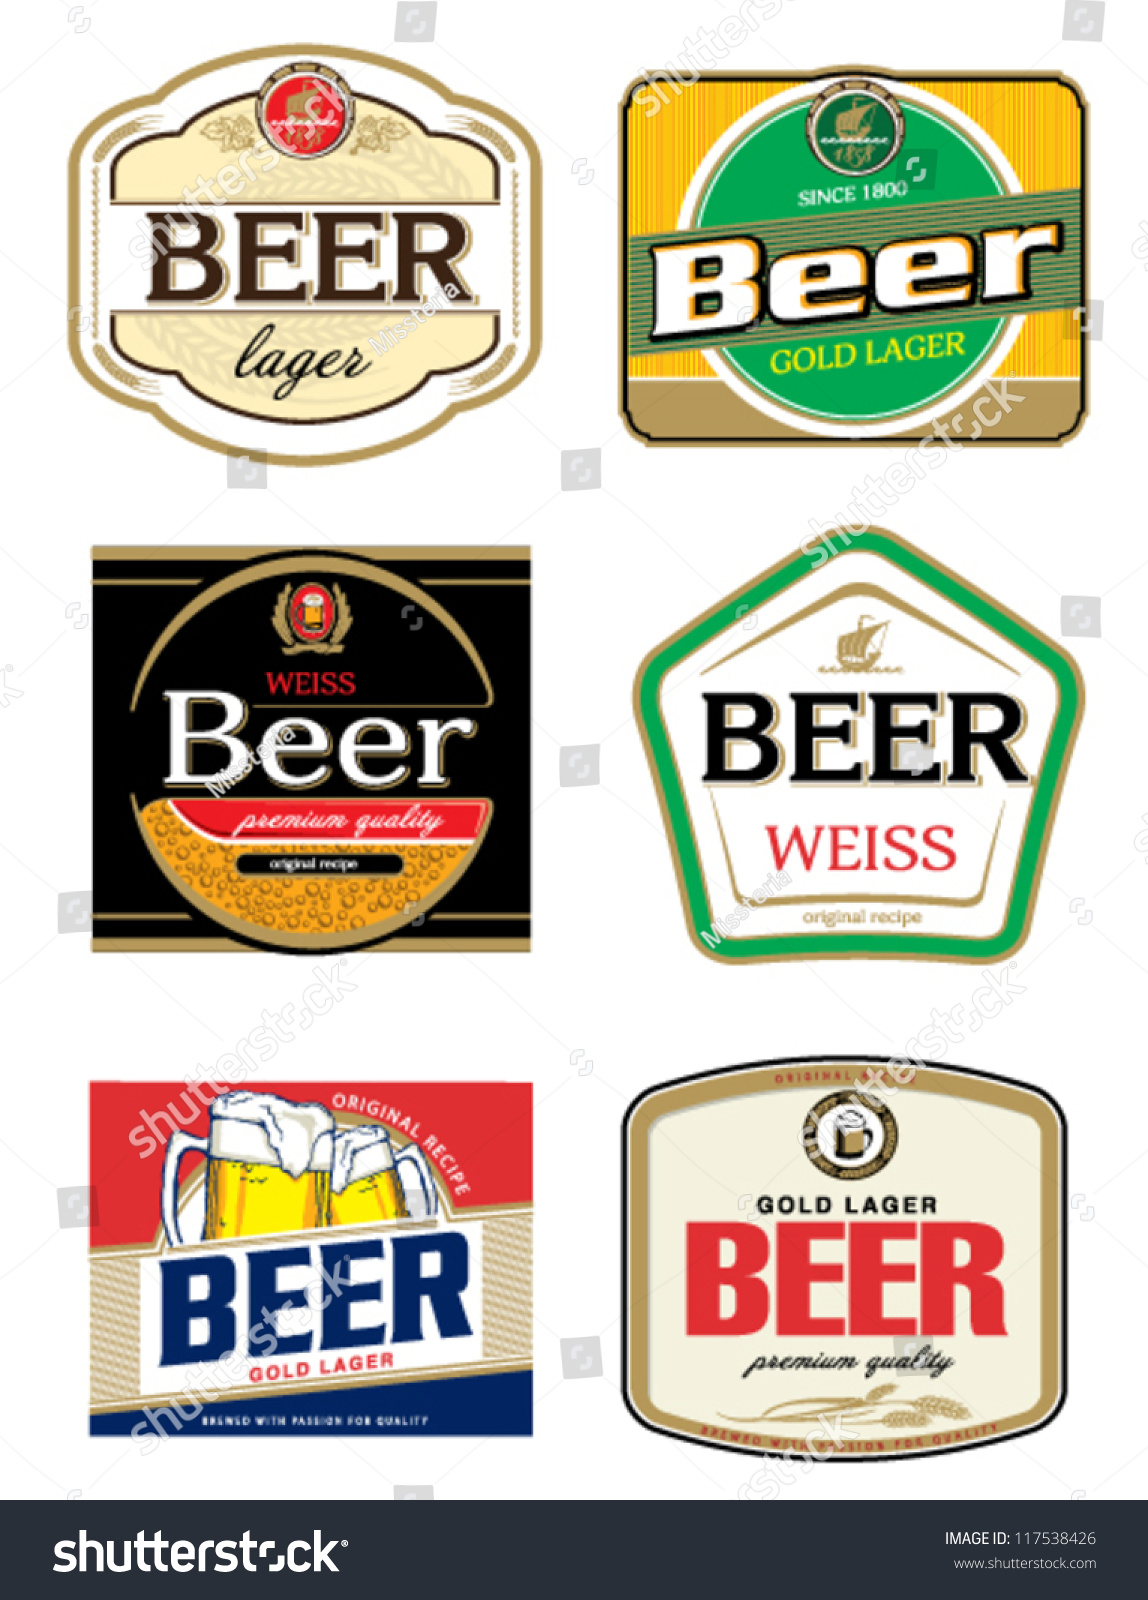 free clipart beer labels - photo #43